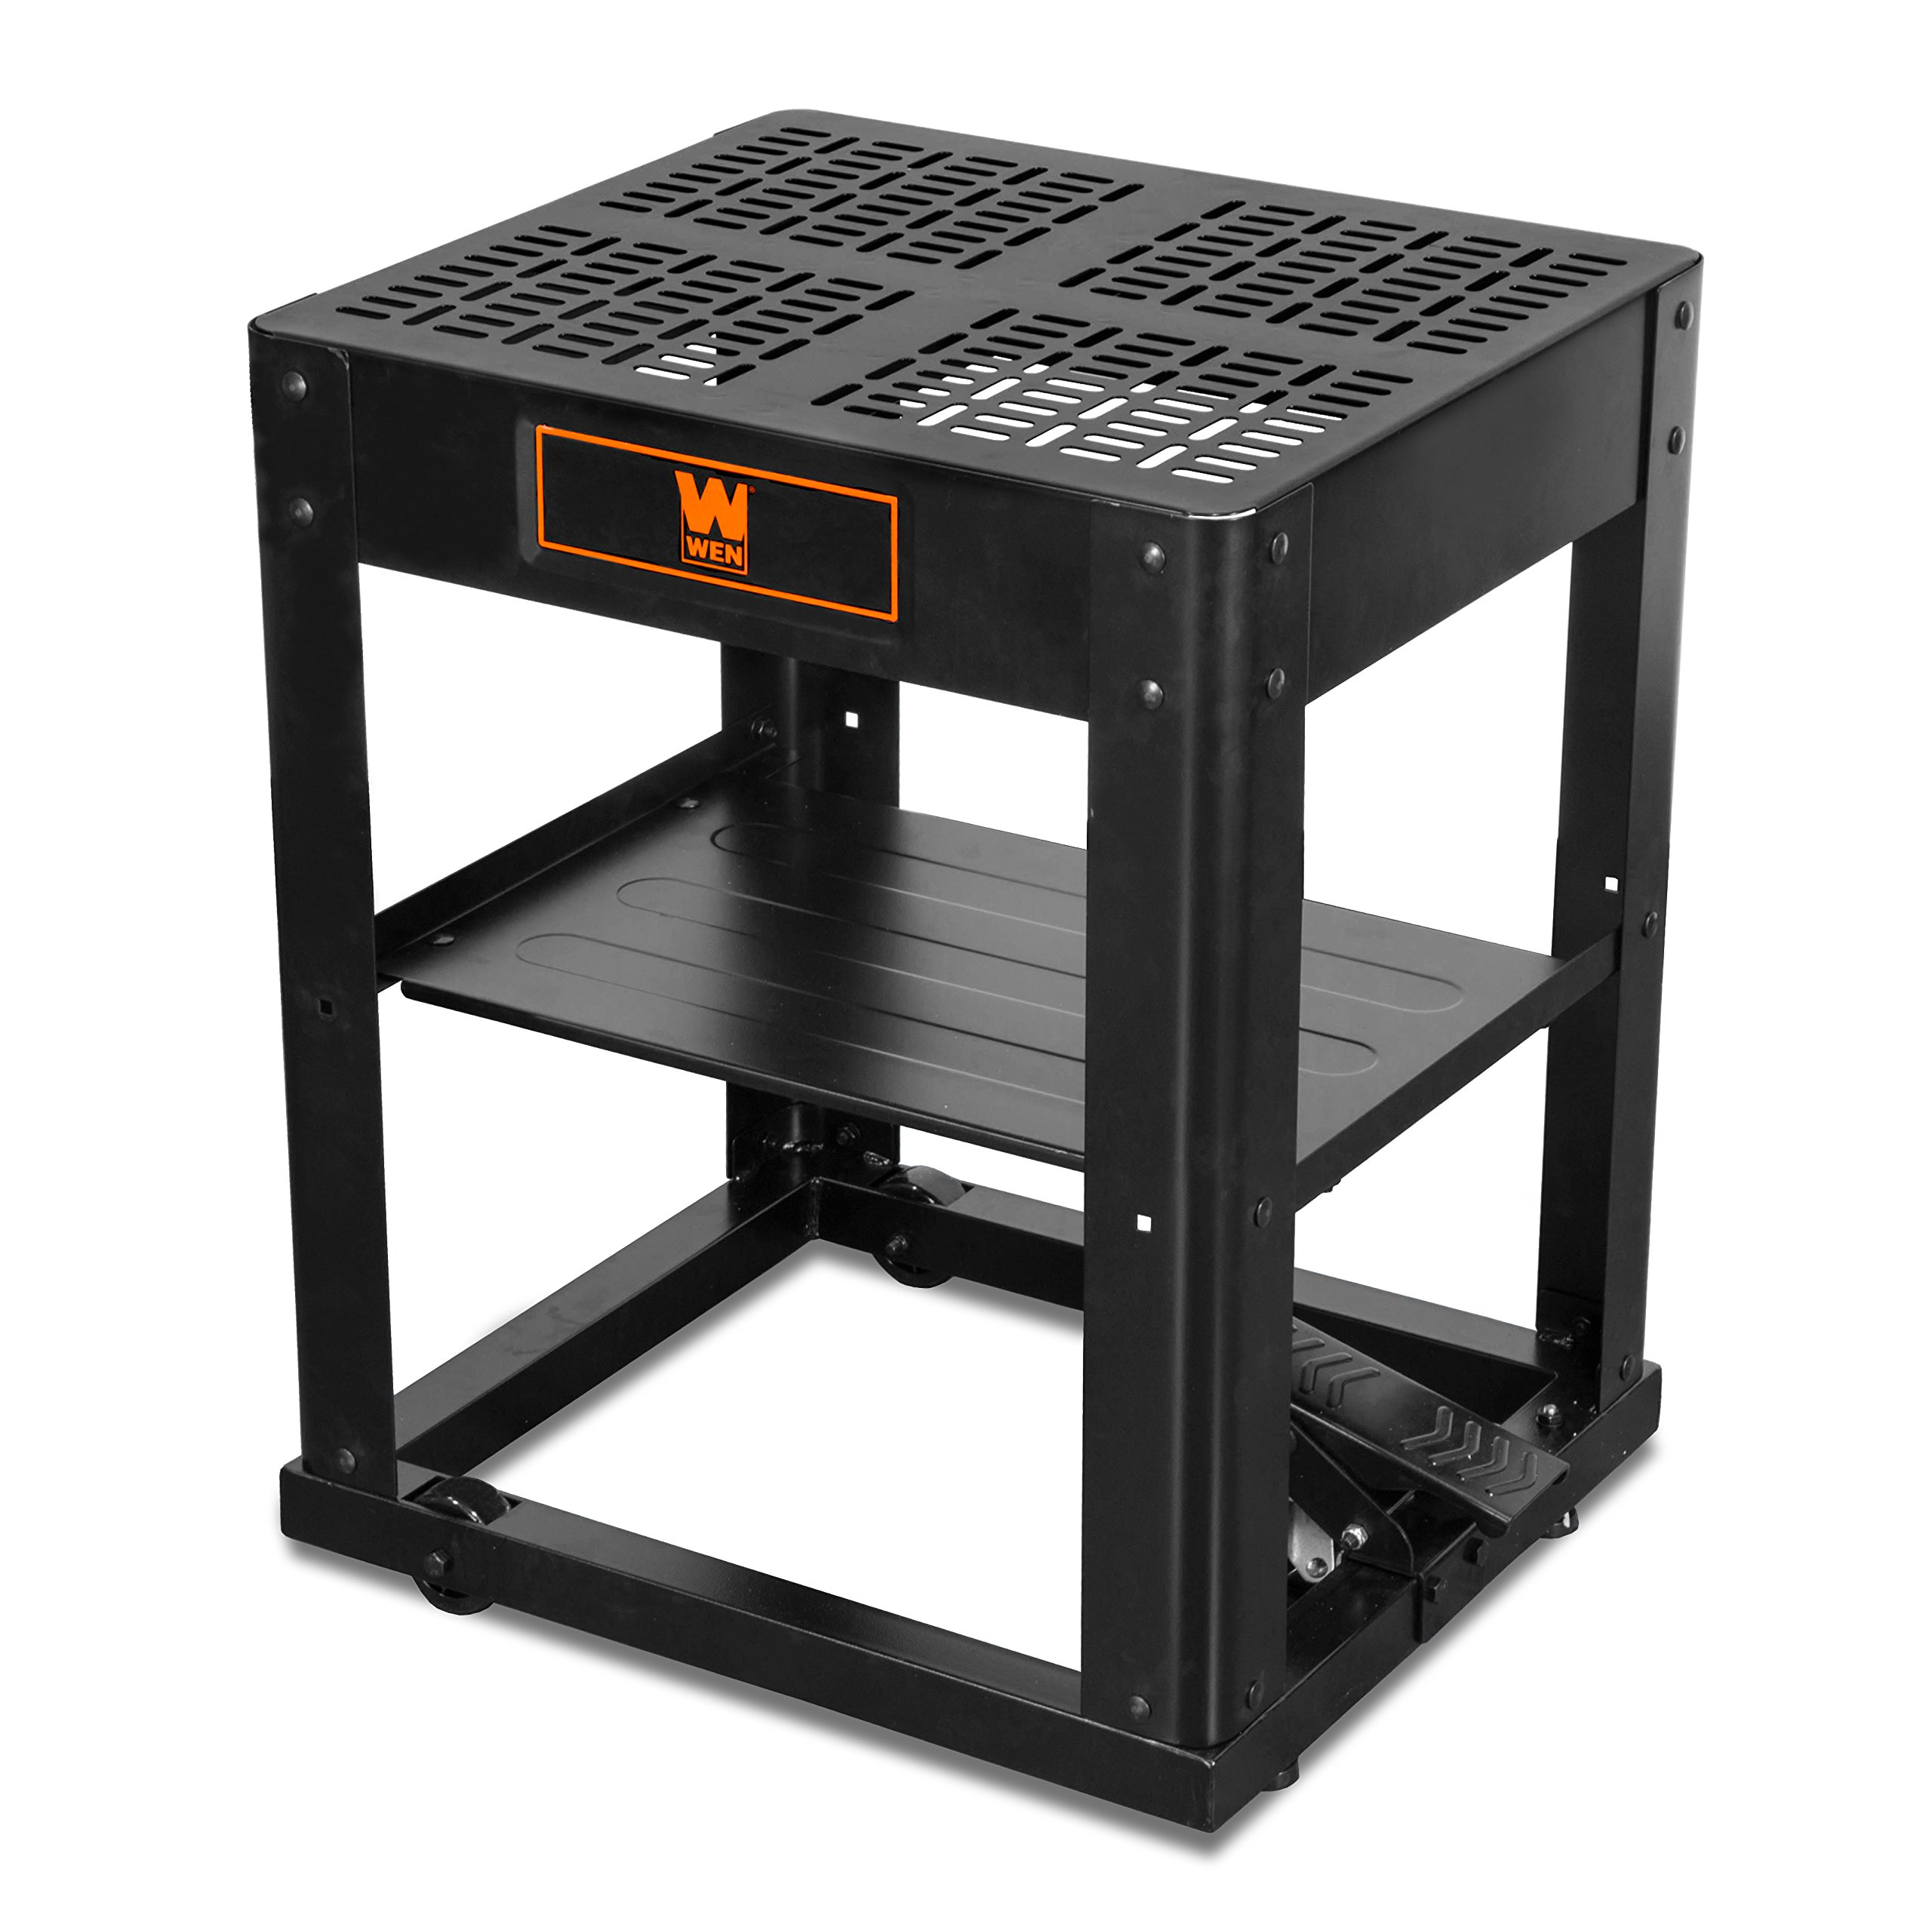 WEN 6588T Multi-Purpose Planer Stand with Storage Shelf and Rolling Base by WEN